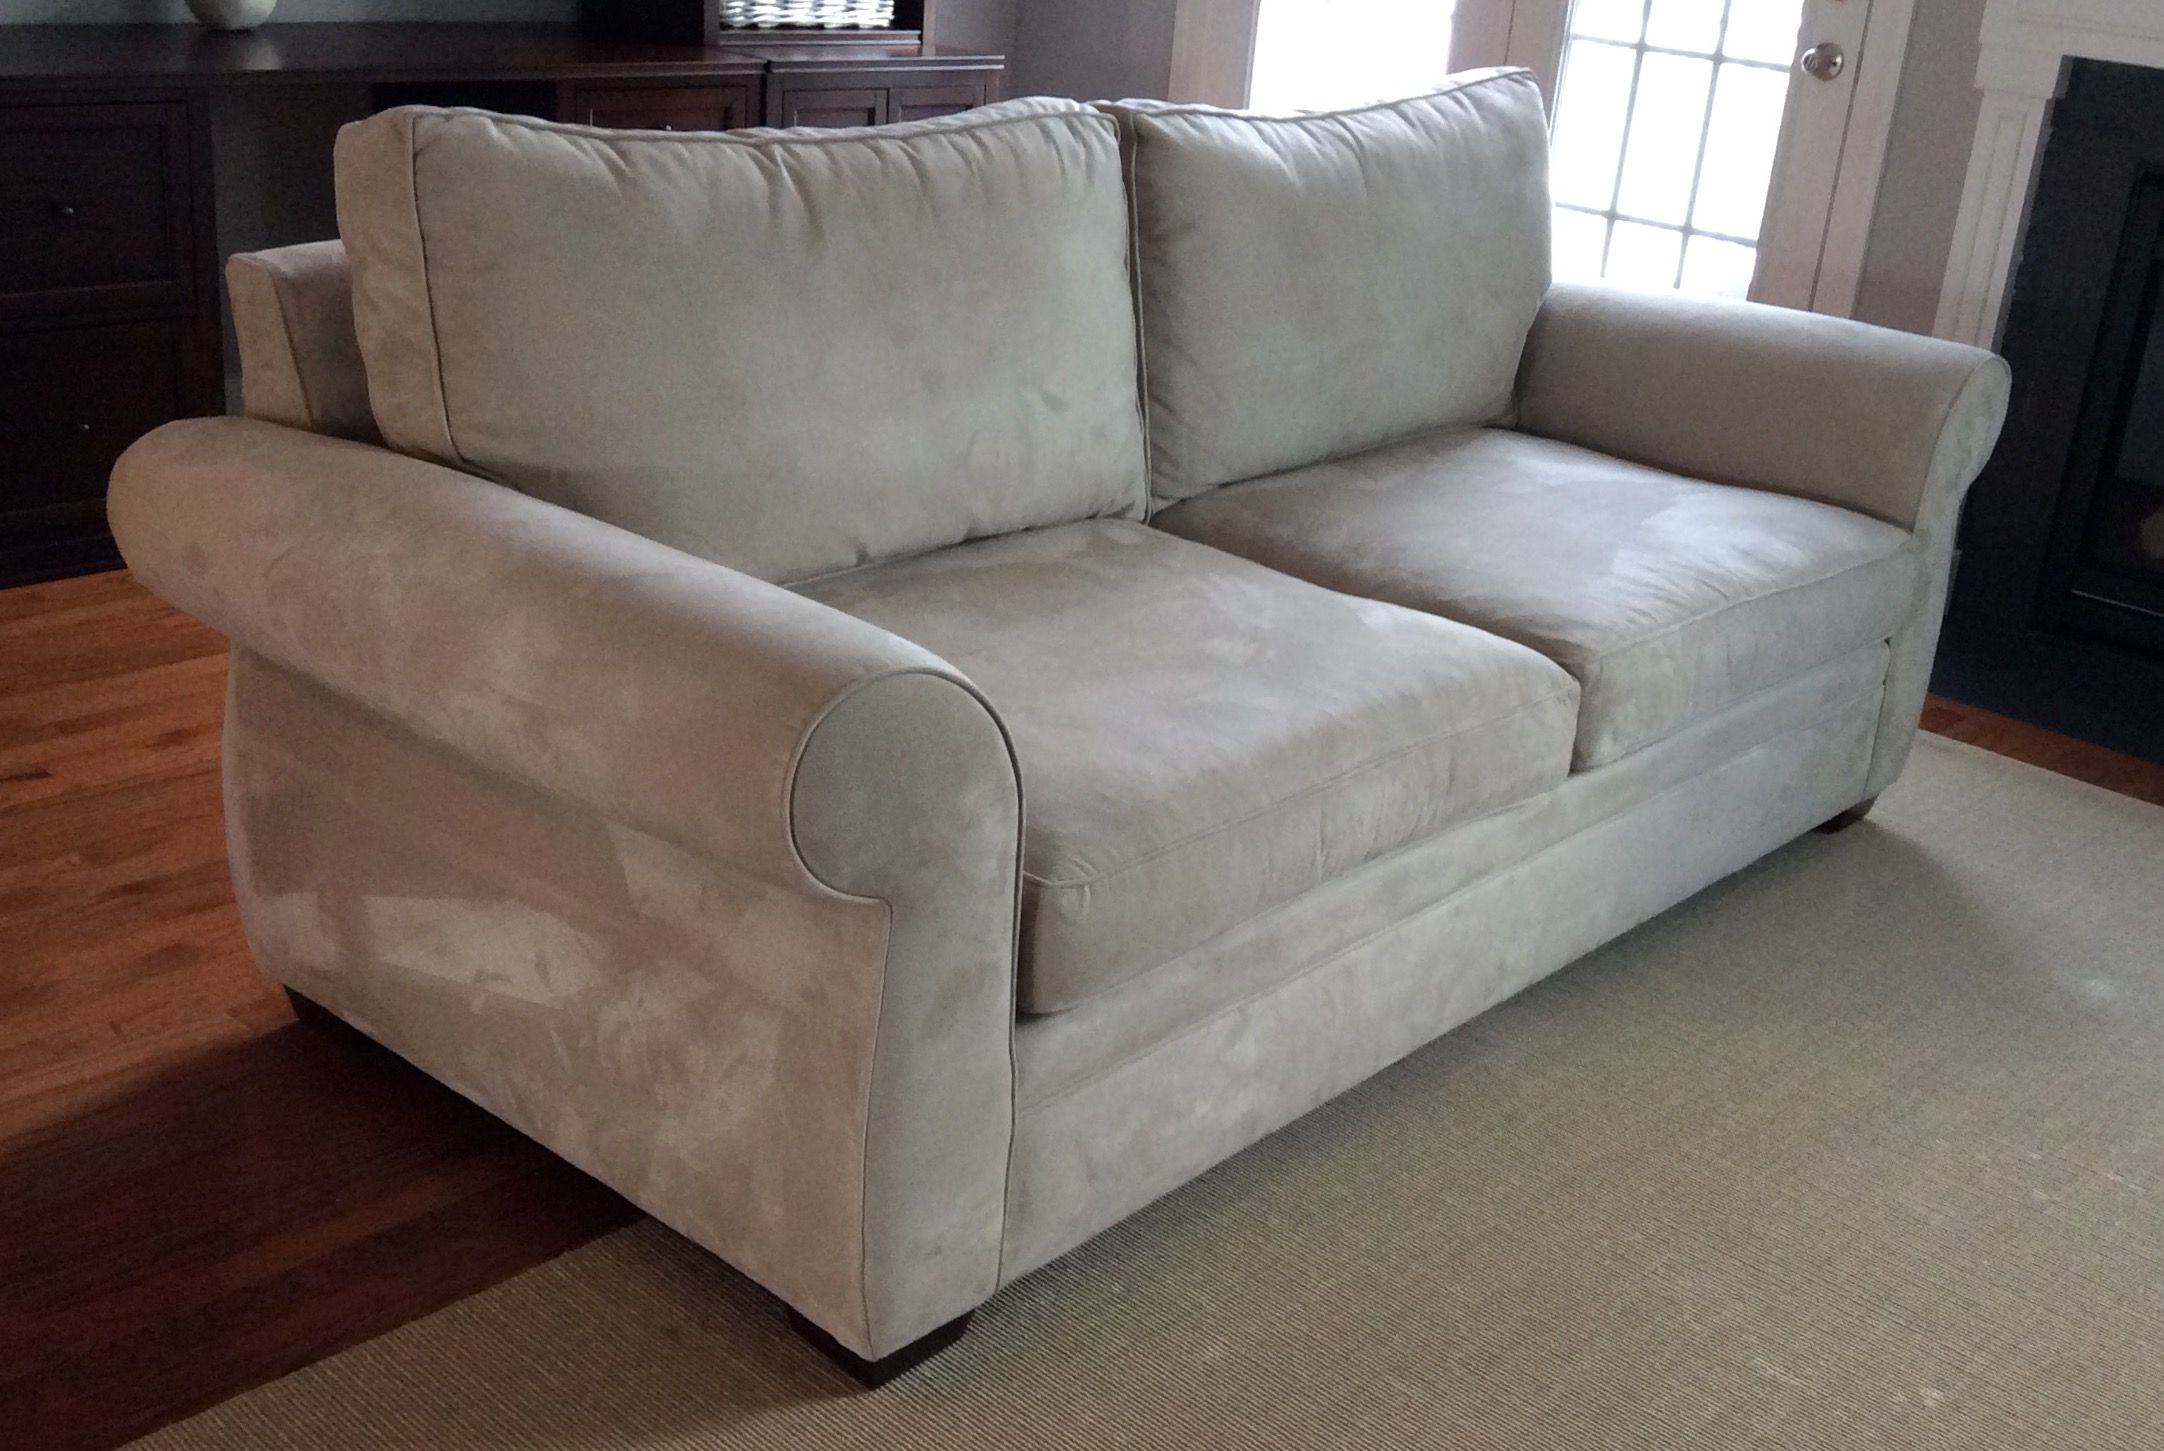 Pearce Roll Arm Upholstered Sofa in 2021   Sofa, Upholstered sofa, Pottery barn style